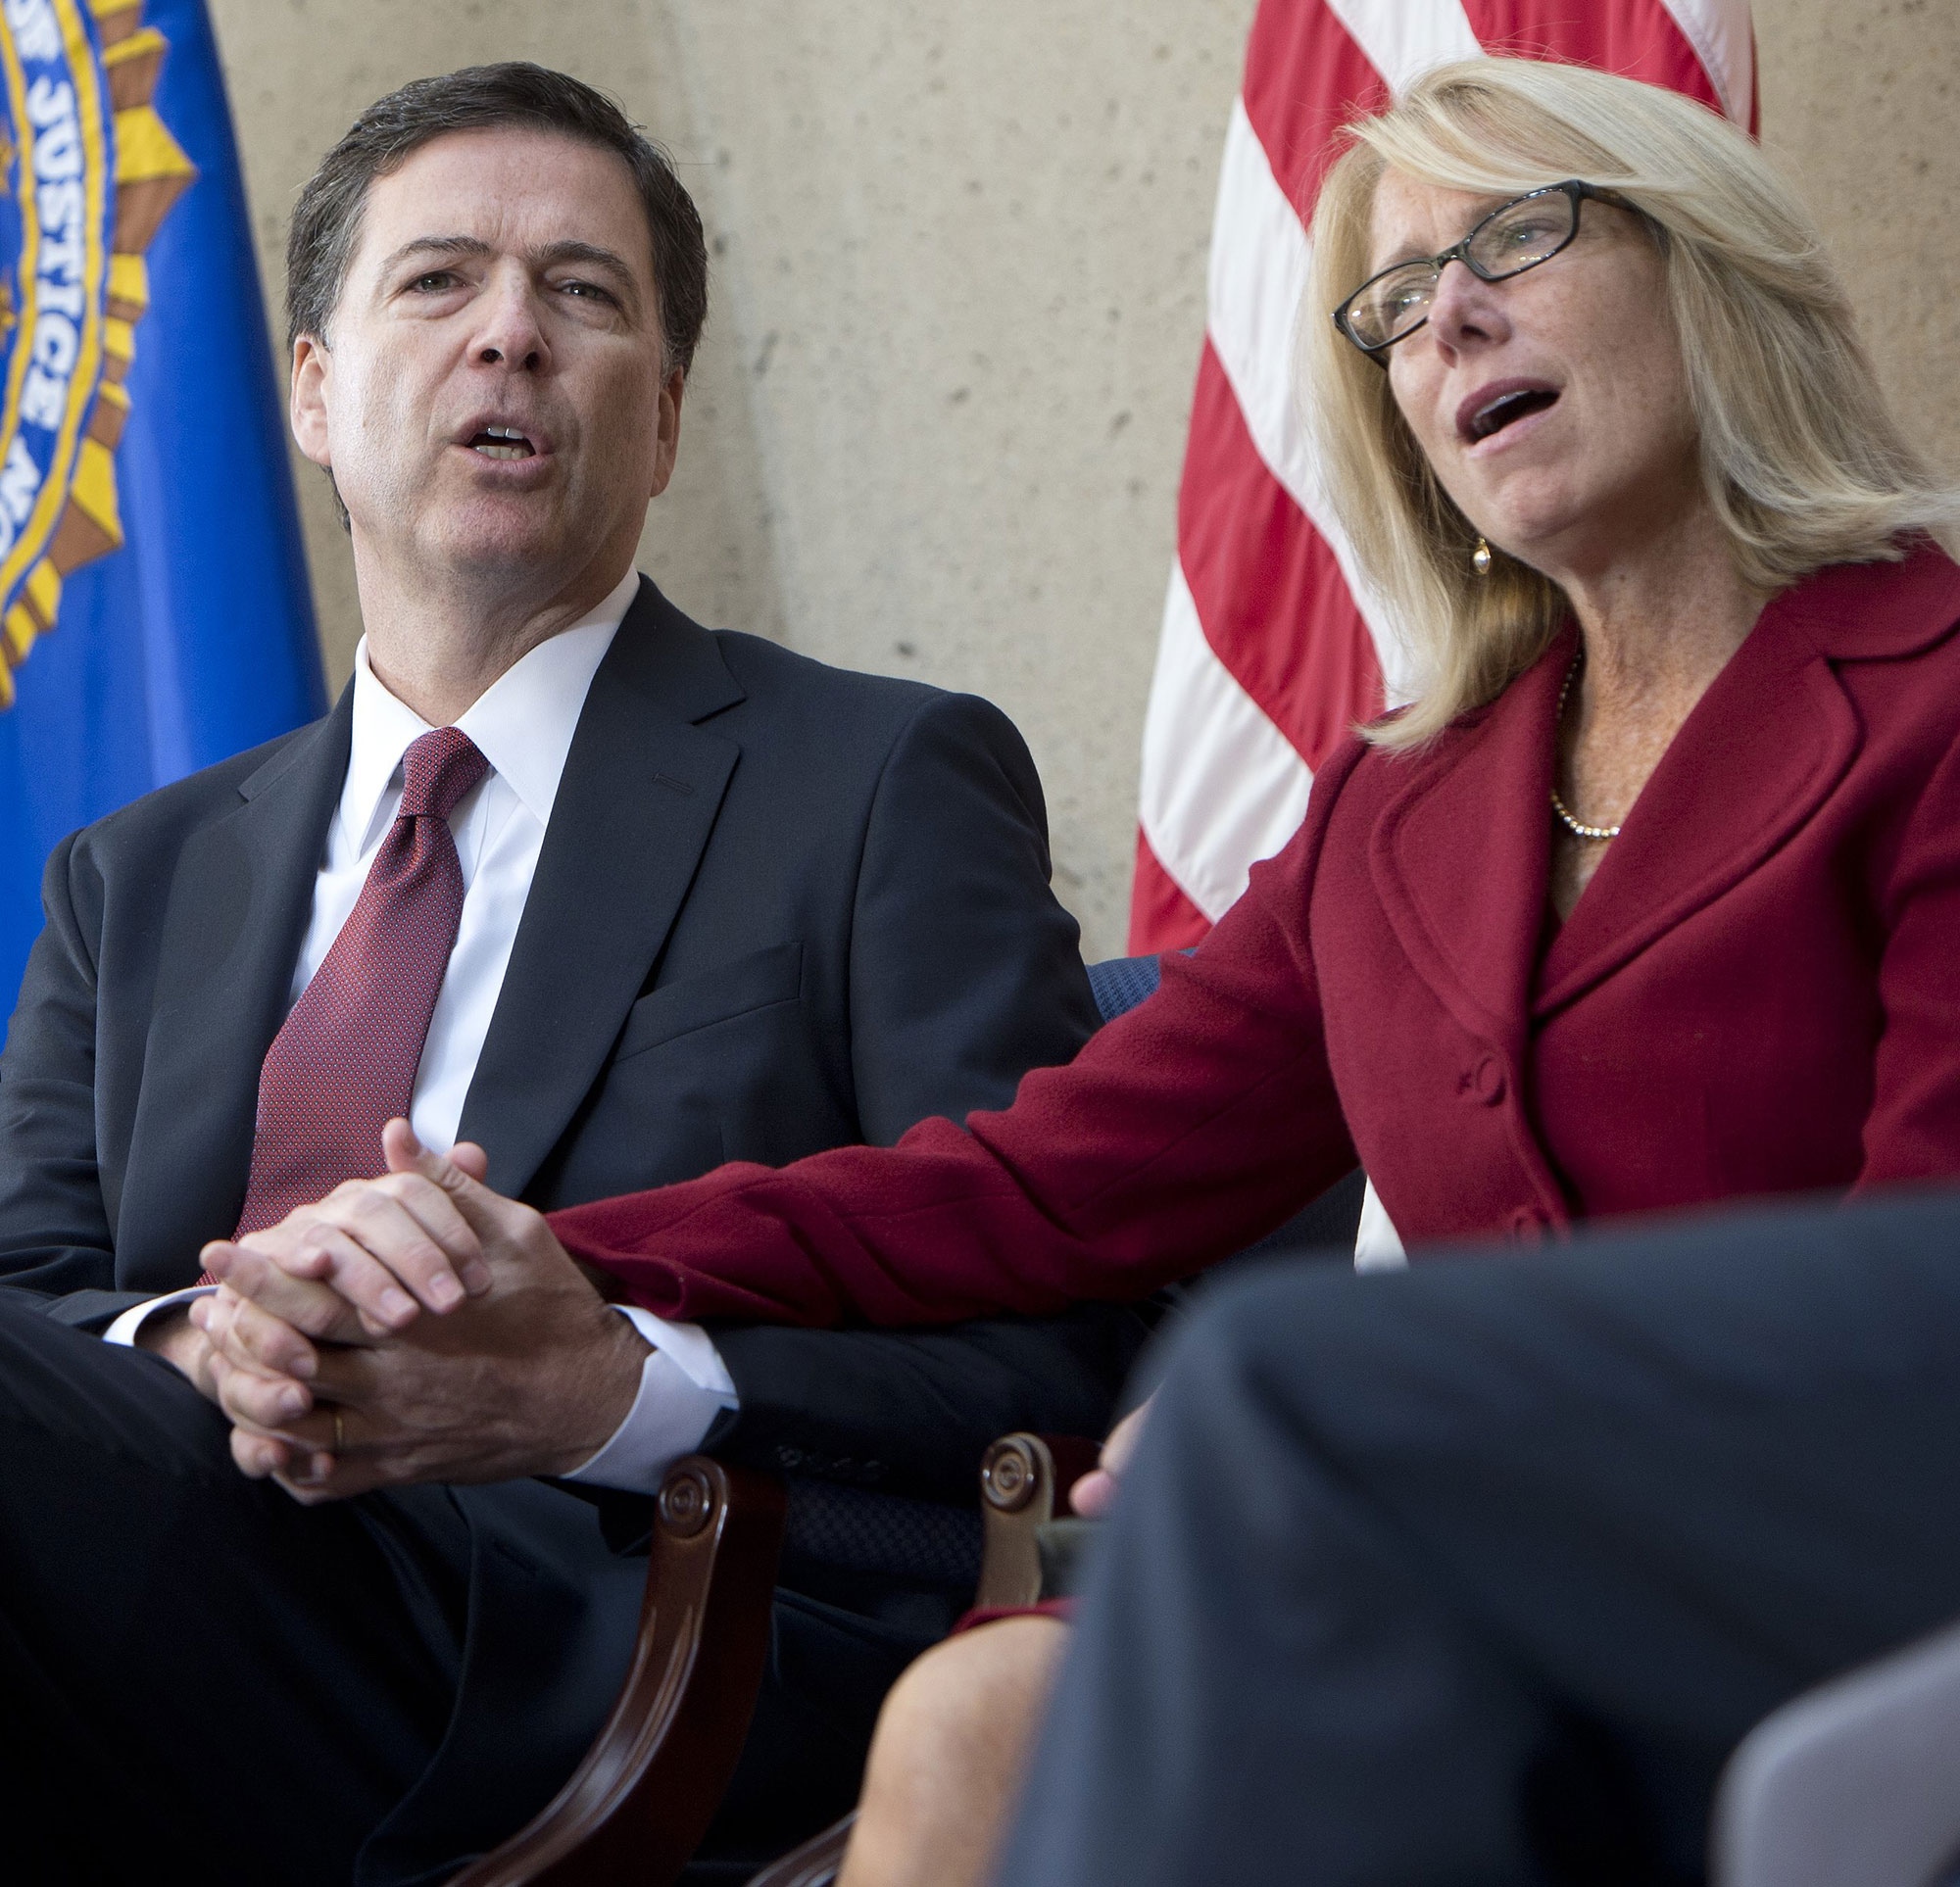 James Comey with wife Patrice Failor in 2013